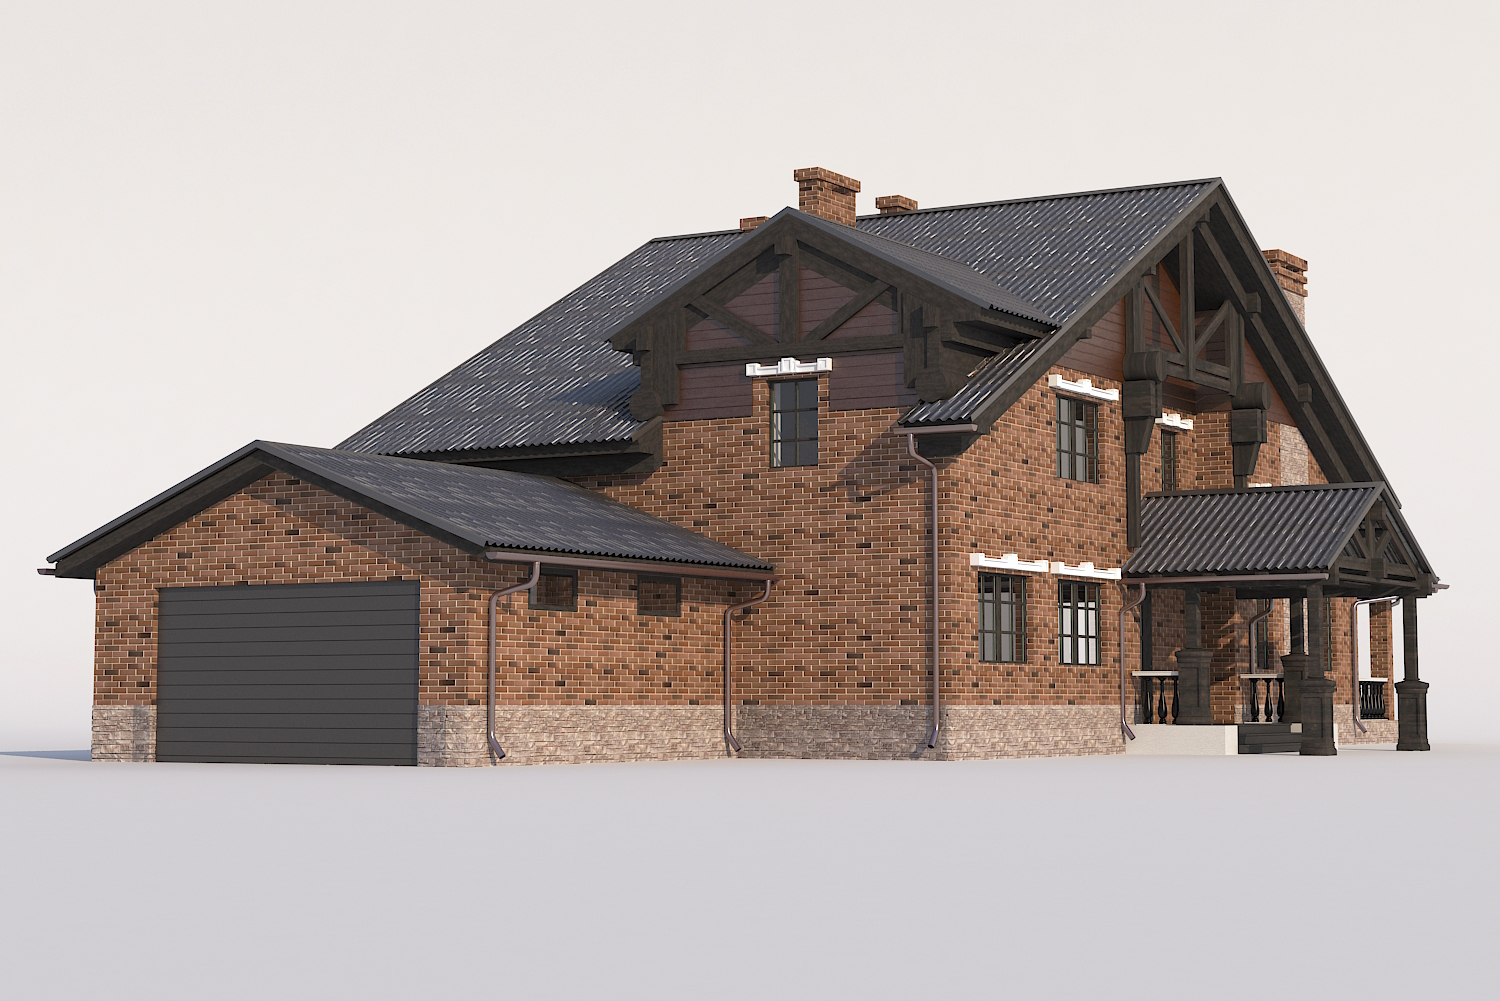 A Chalet house with a garage